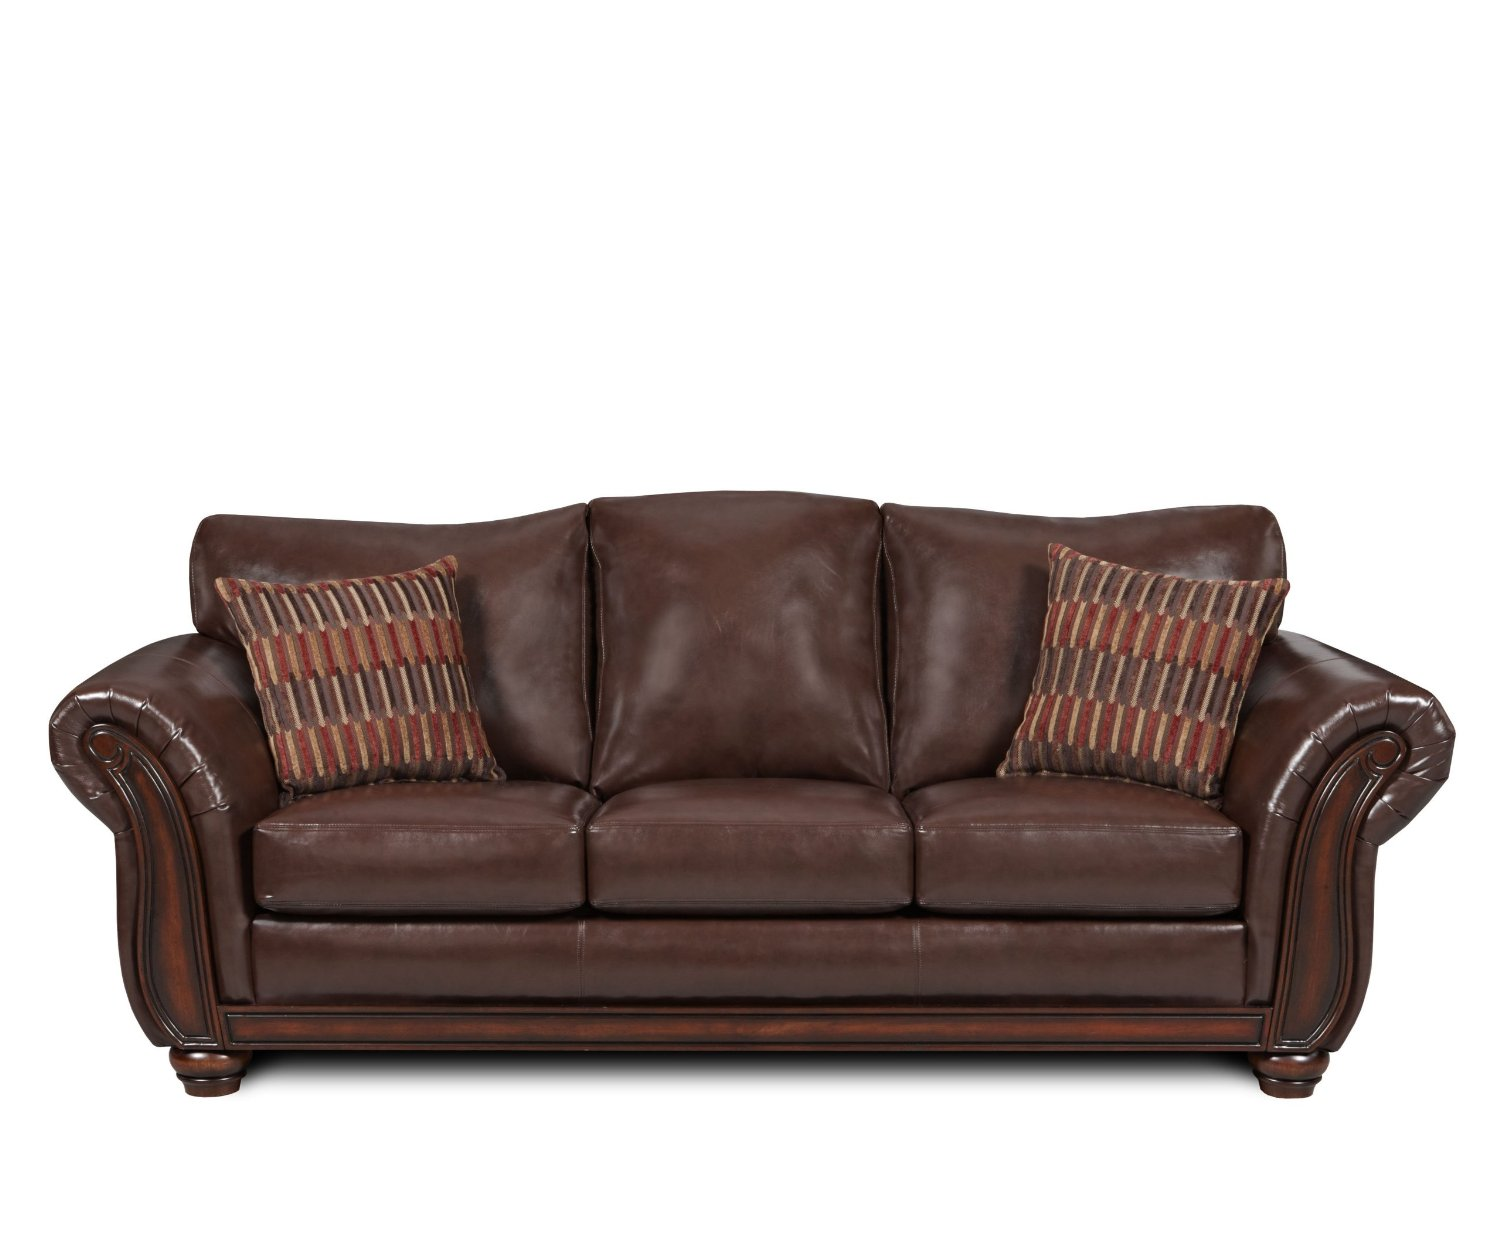 Leather couch furniture guide leather for Sofa sofa furniture